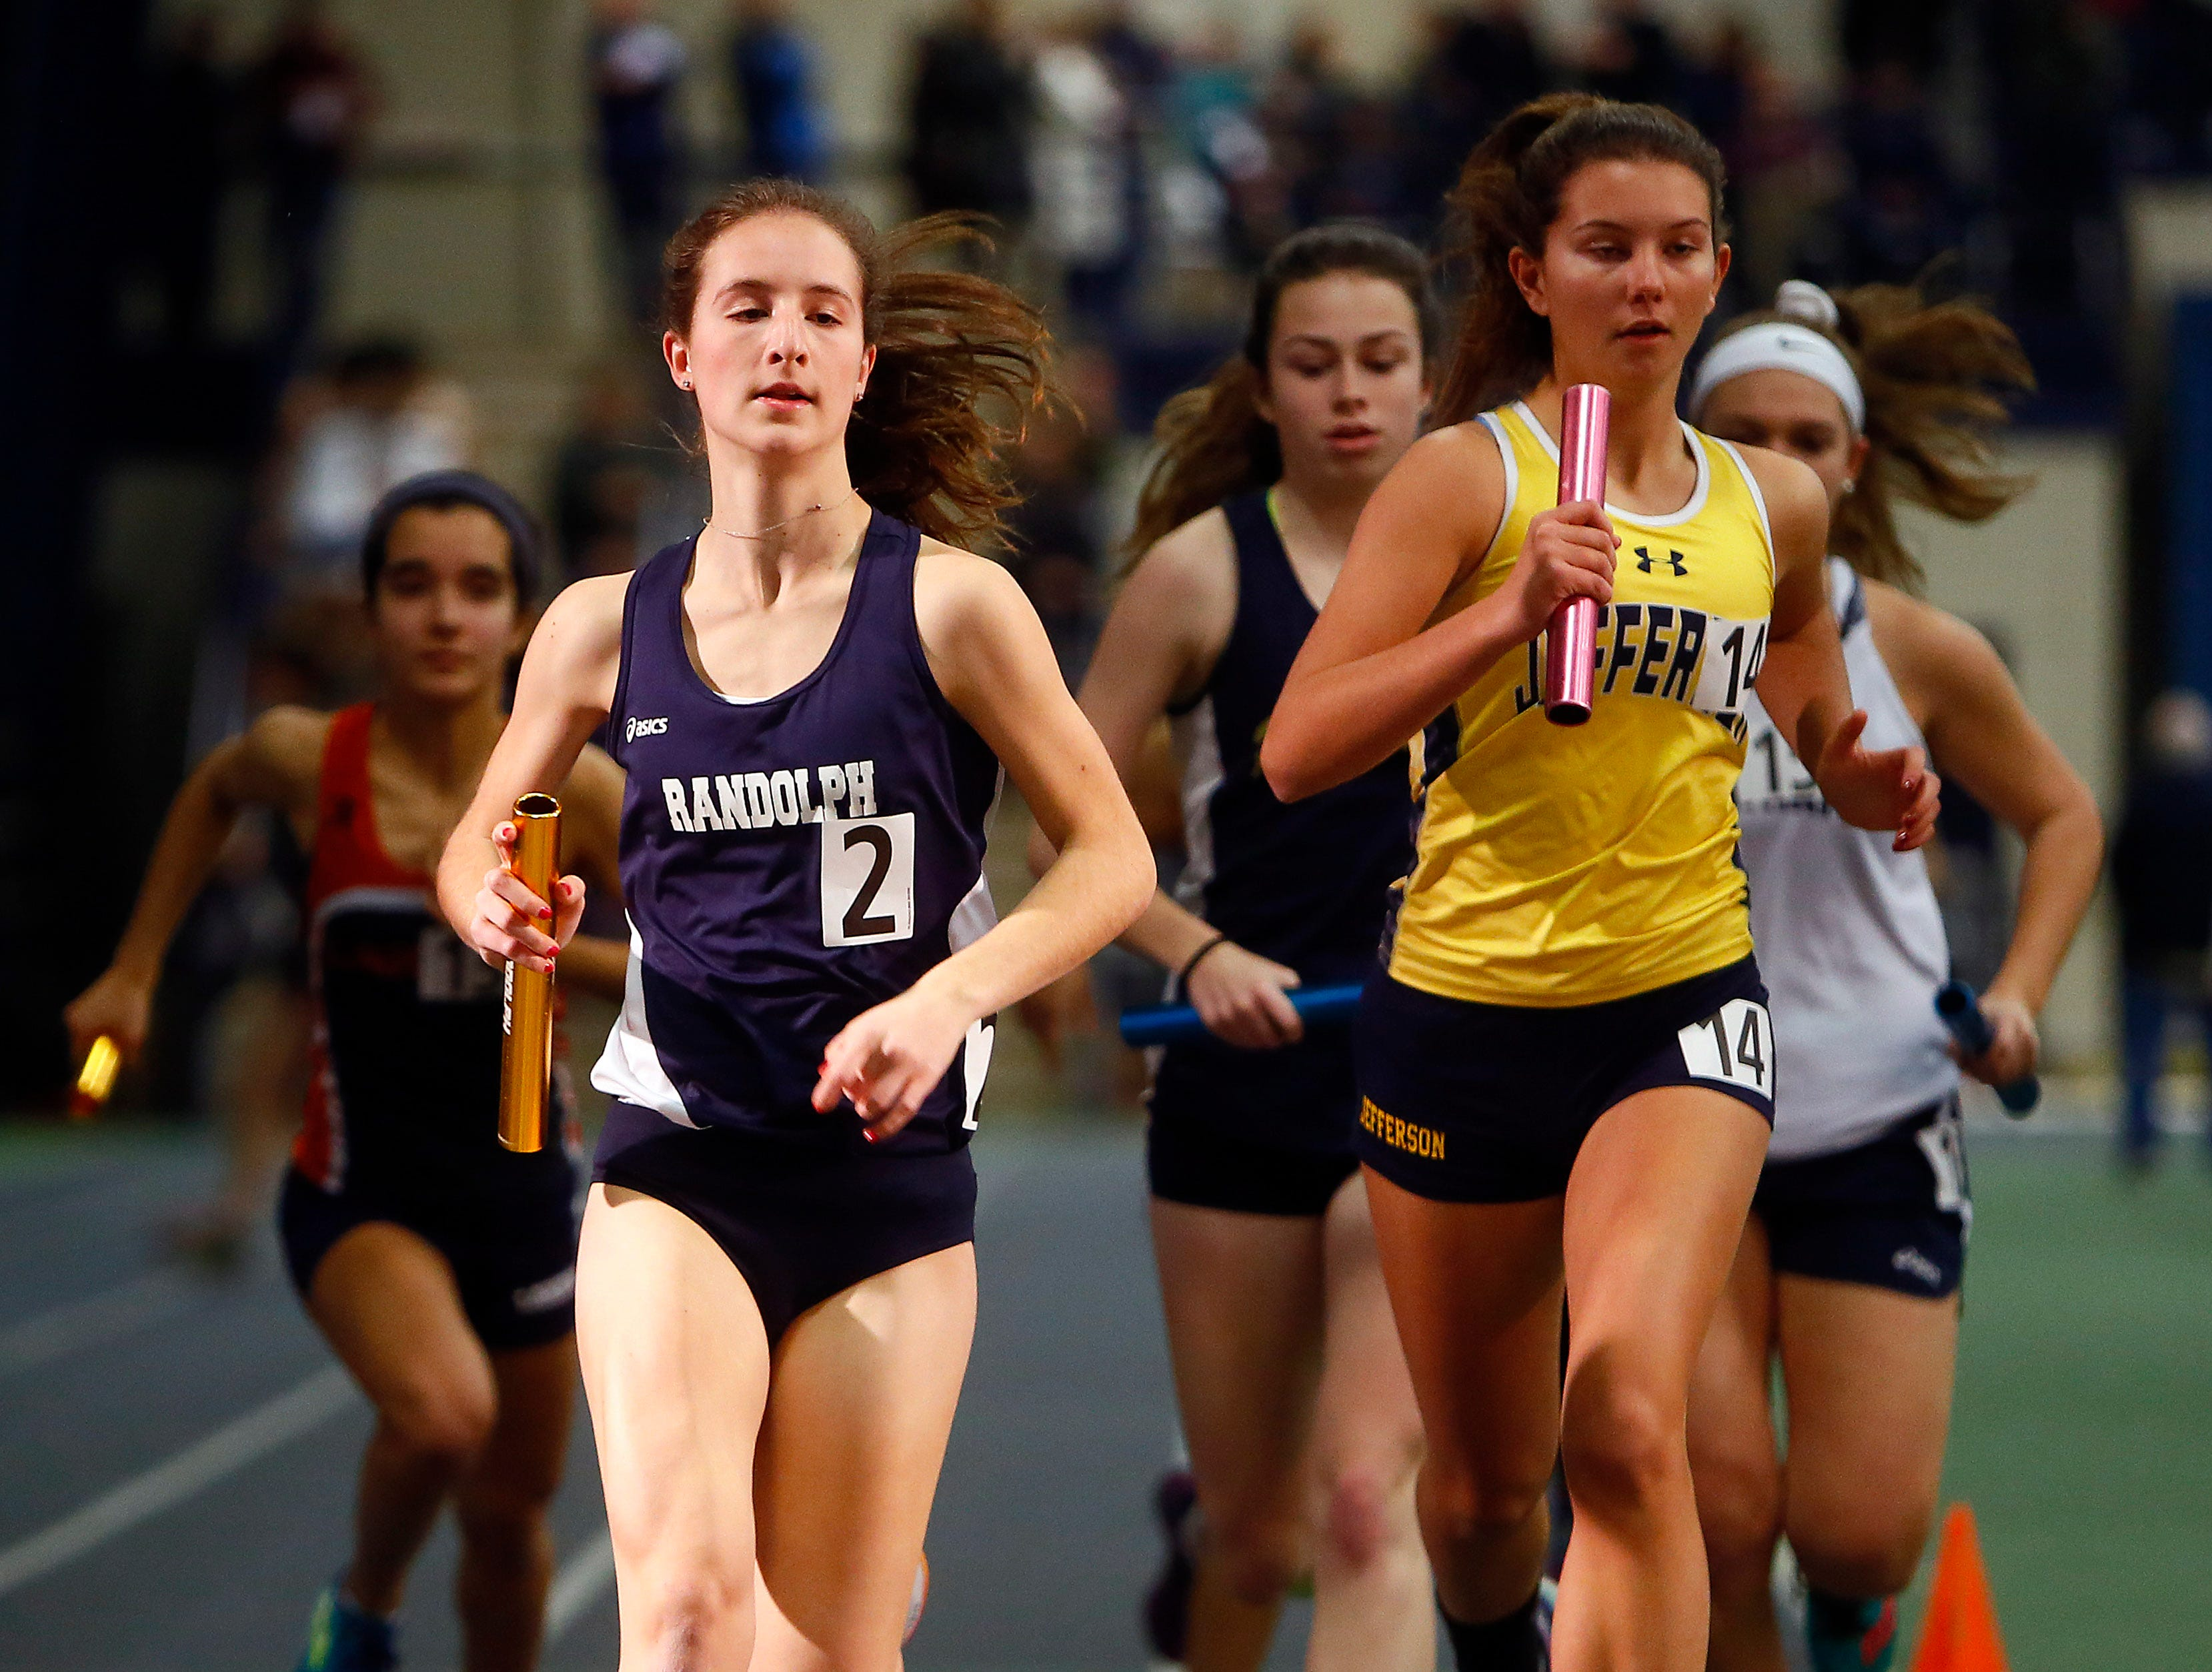 Randolph junior Abby Loveys during the girls distance medley at the Morris County Relay Championships at Drew University.  January 5, 2018. Madison, NJ.